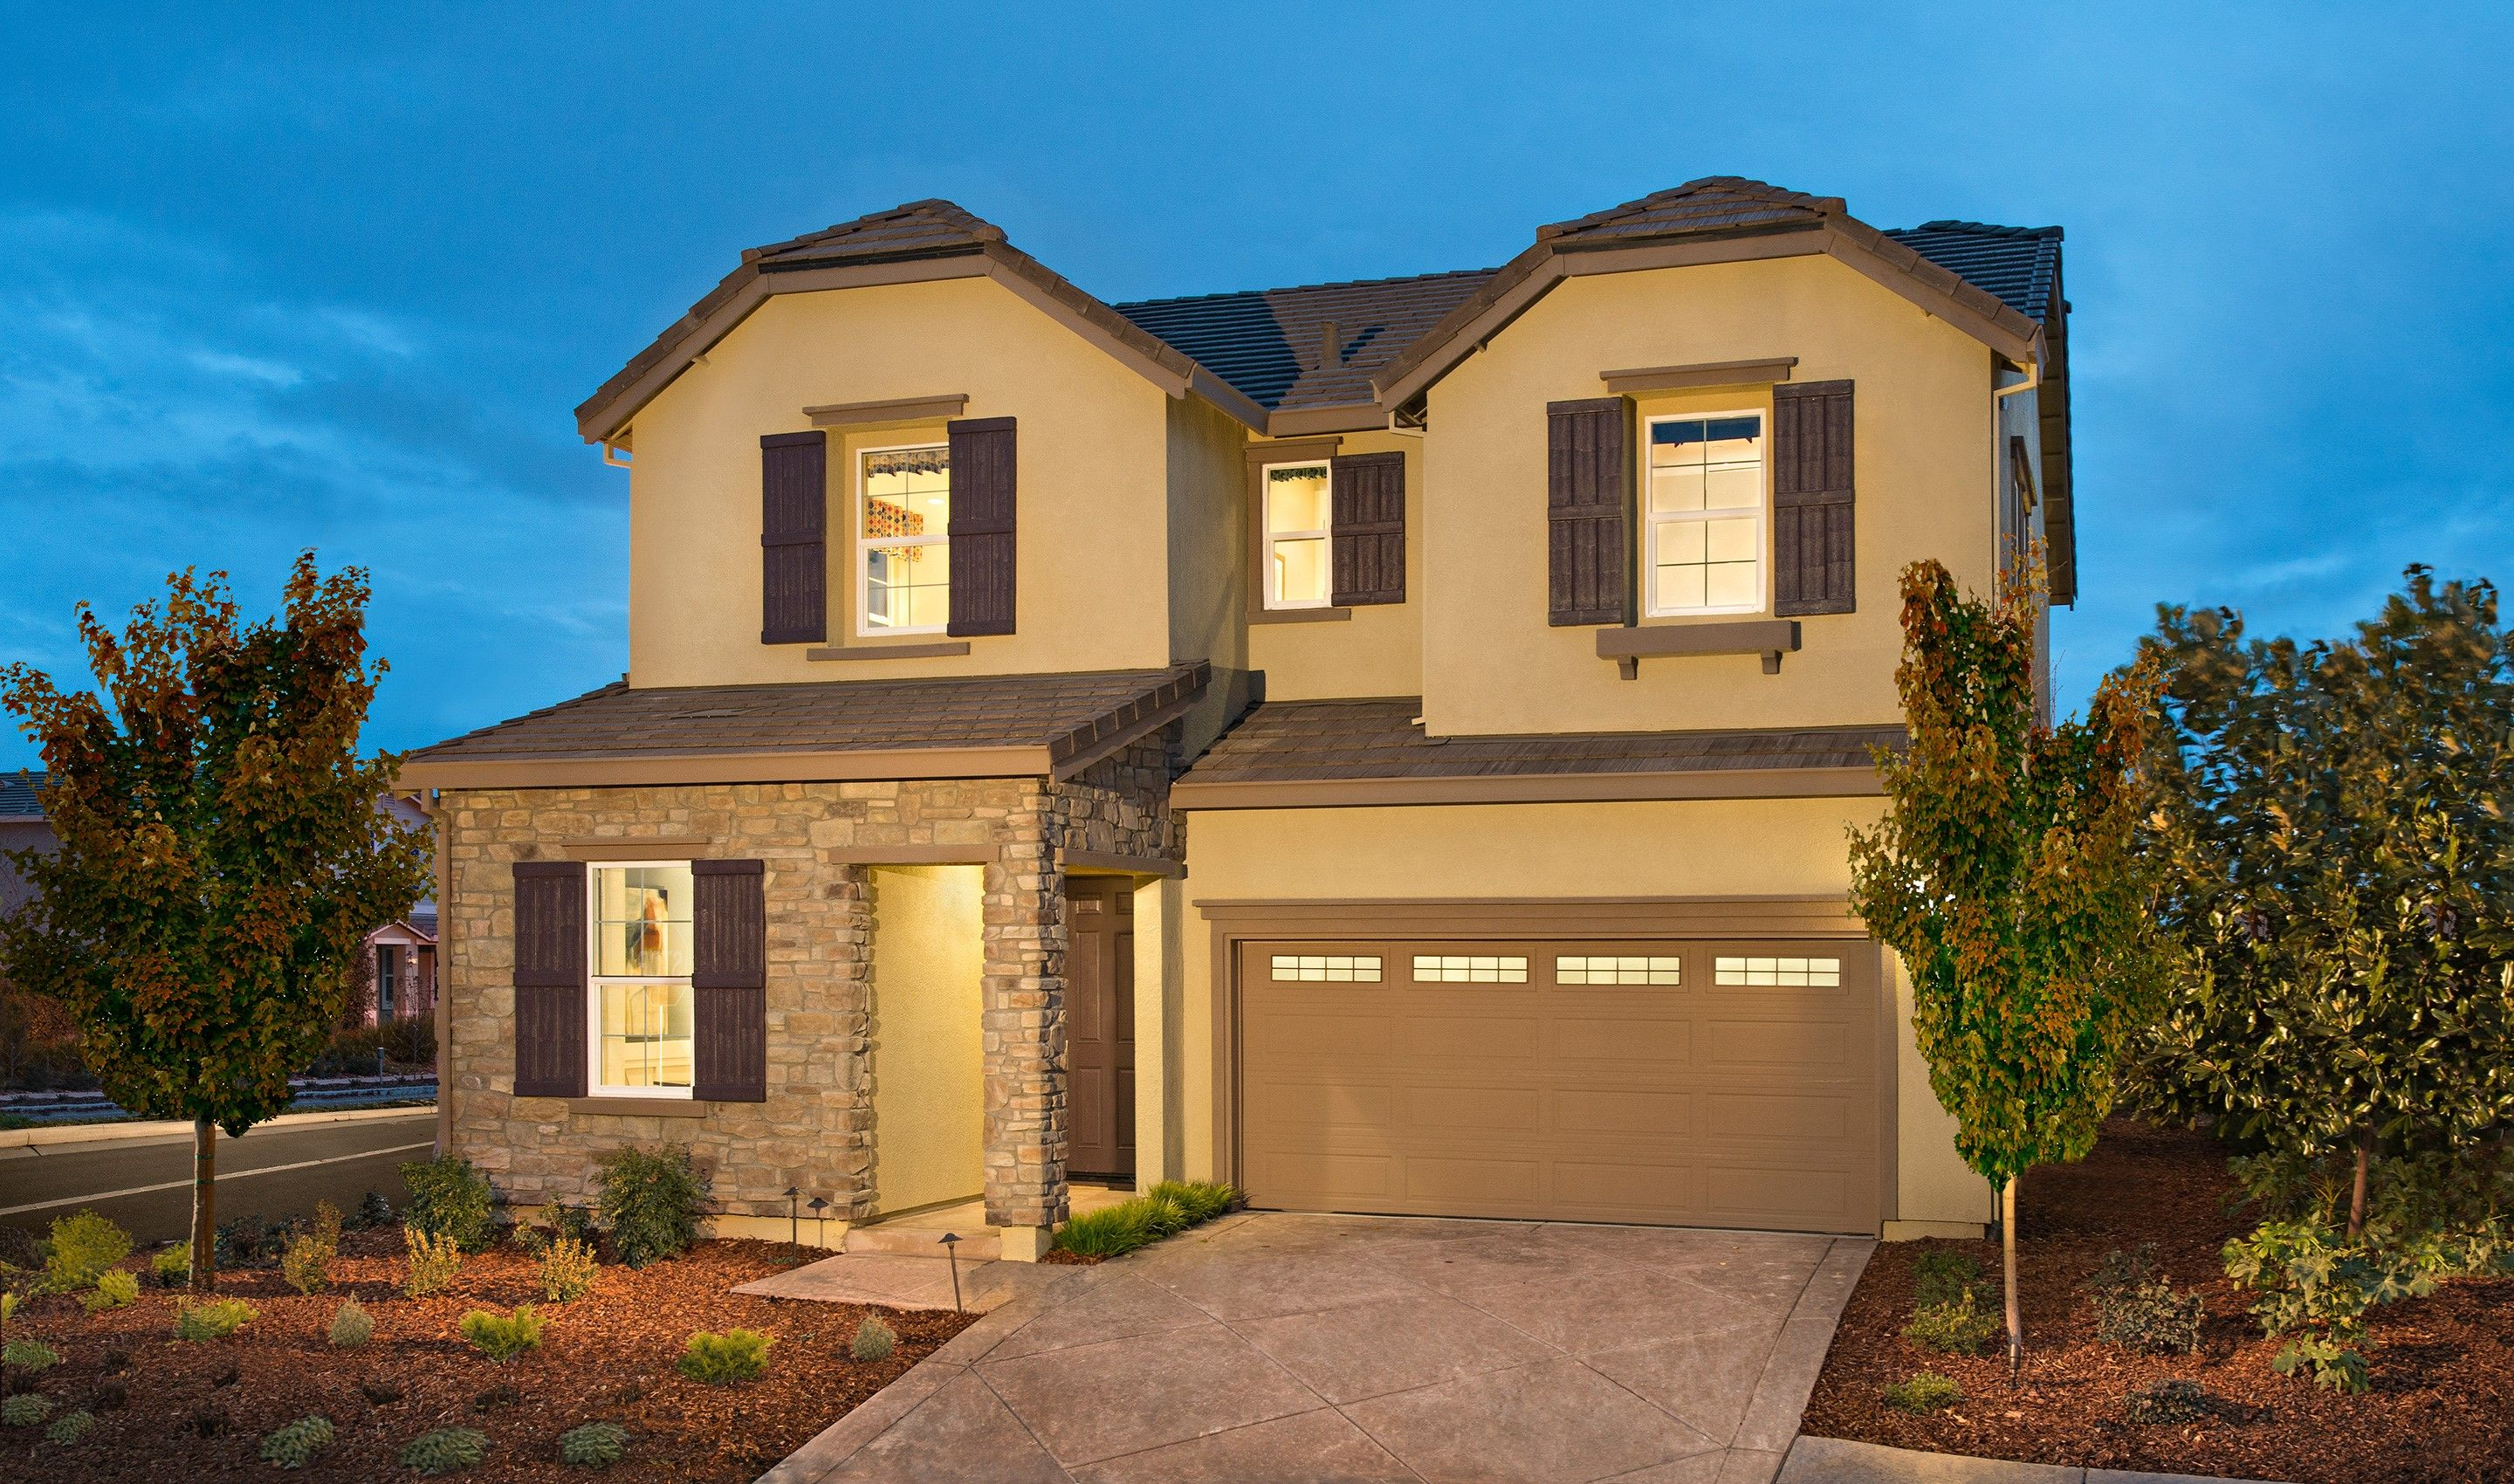 New Construction Homes & Plans in Elk Grove, CA   801 Homes ...